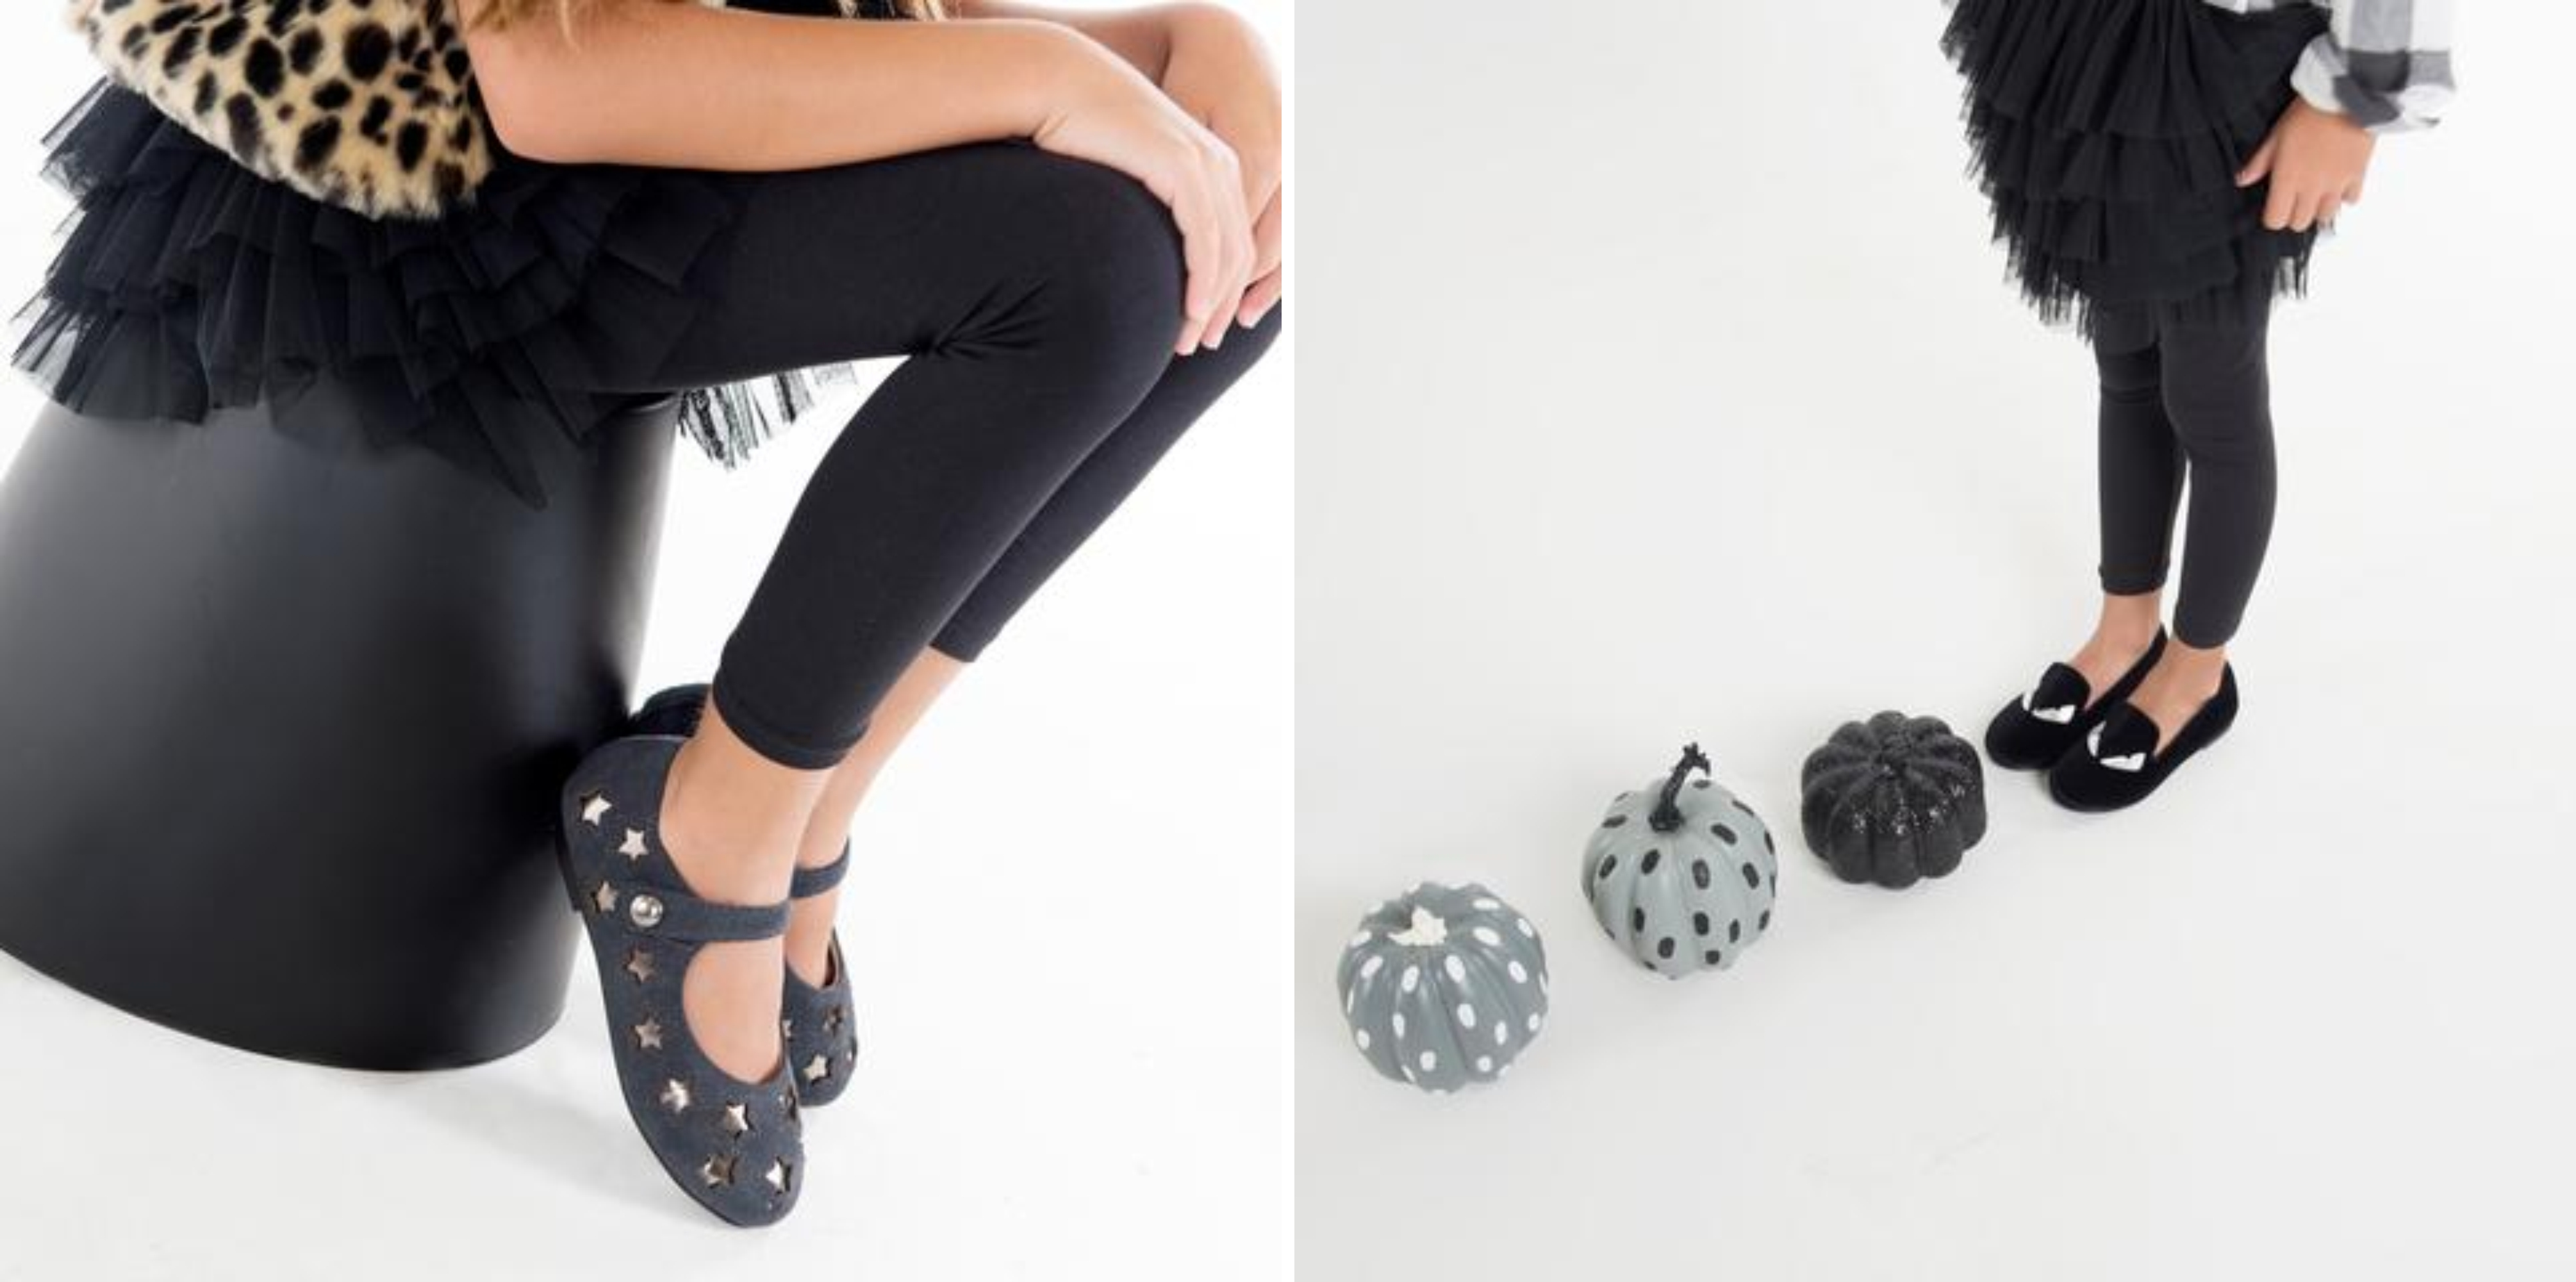 Hoo Shoes: Adorable and Affordable Kids